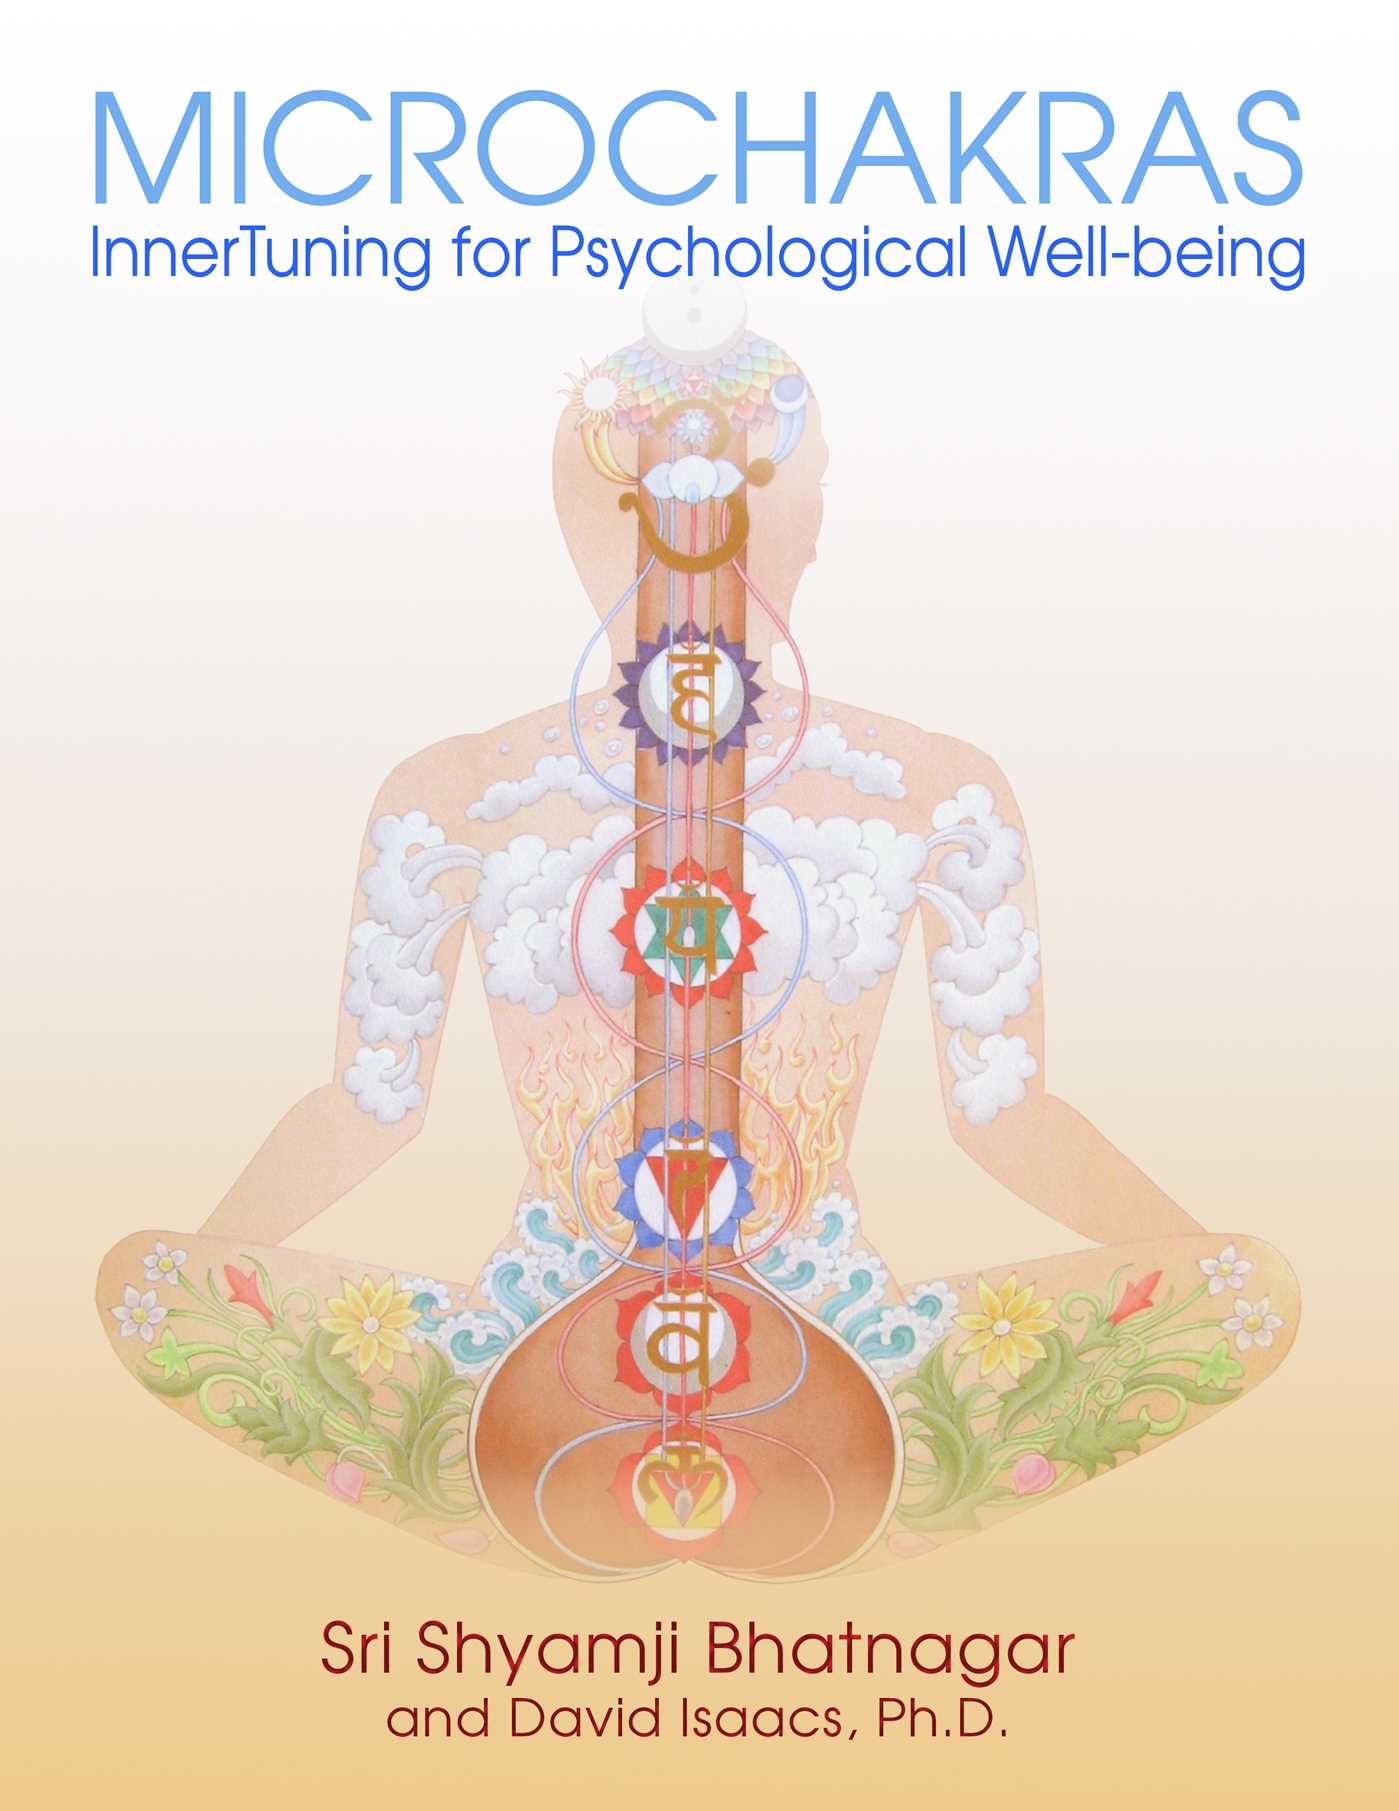 the psychological well being and psycho Psychological wellbeing and health are closely linked at older ages three aspects of psychological wellbeing can be distinguished: evaluative wellbeing (or life satisfaction), hedonic wellbeing (feelings of happiness, sadness, etc), and eudemonic wellbeing (sense of purpose and meaning in life.